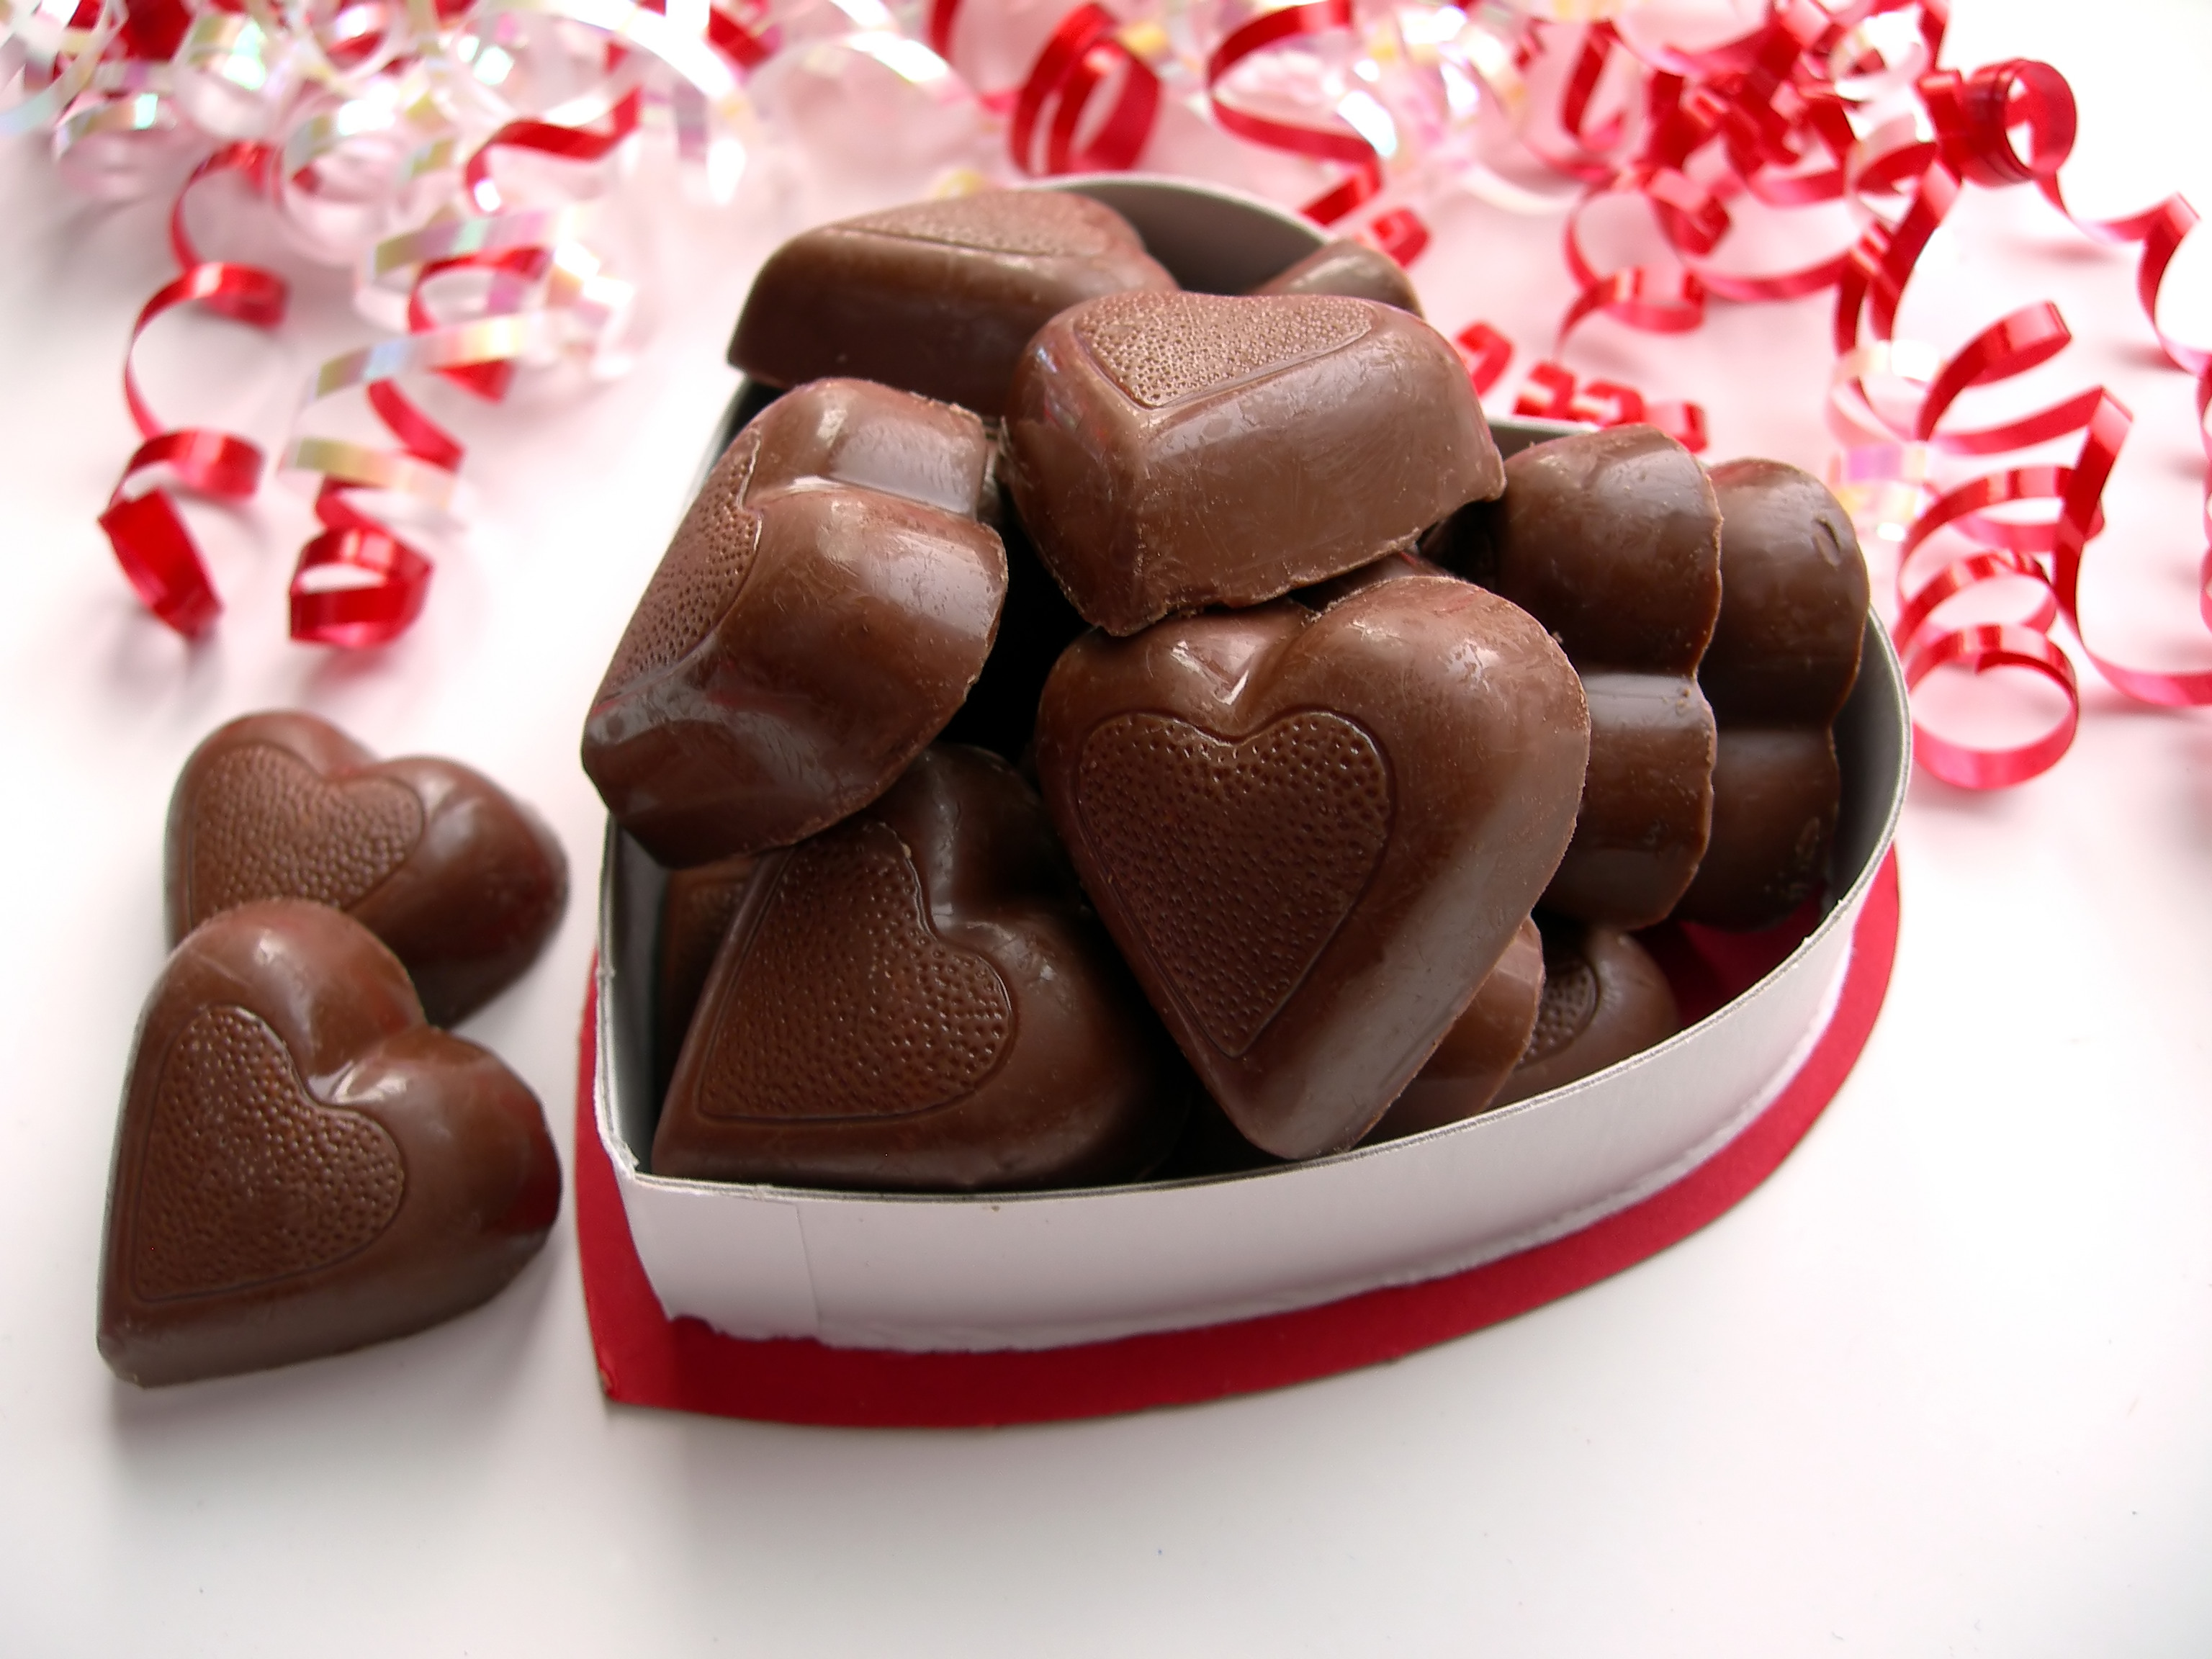 Lysine: Herpes, Chocolate, and Valentine's Day